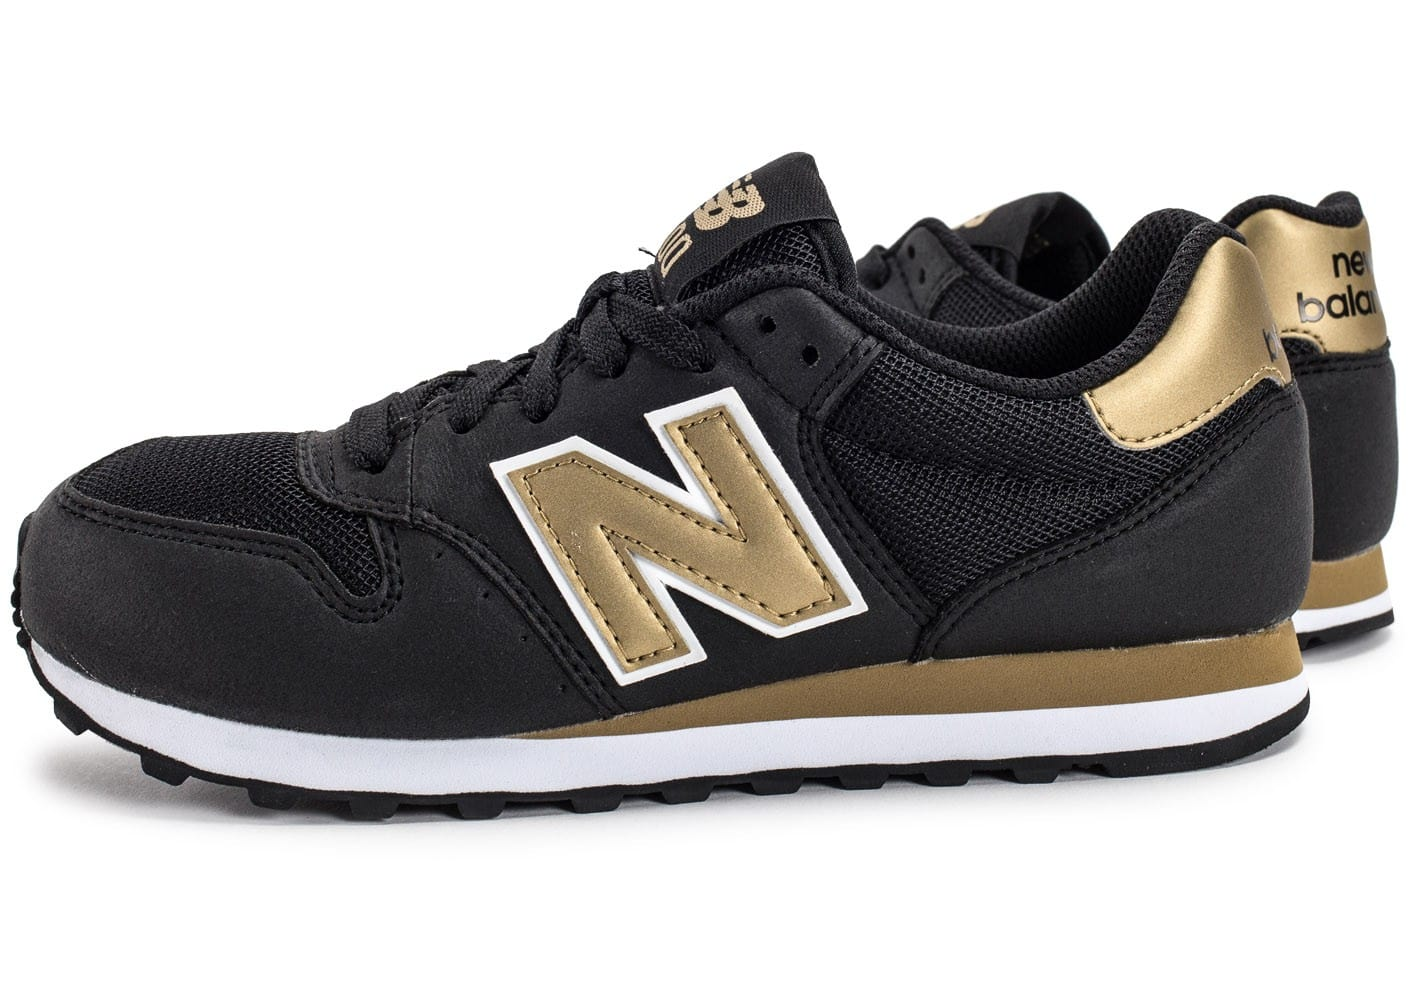 new balance noir et or wl410